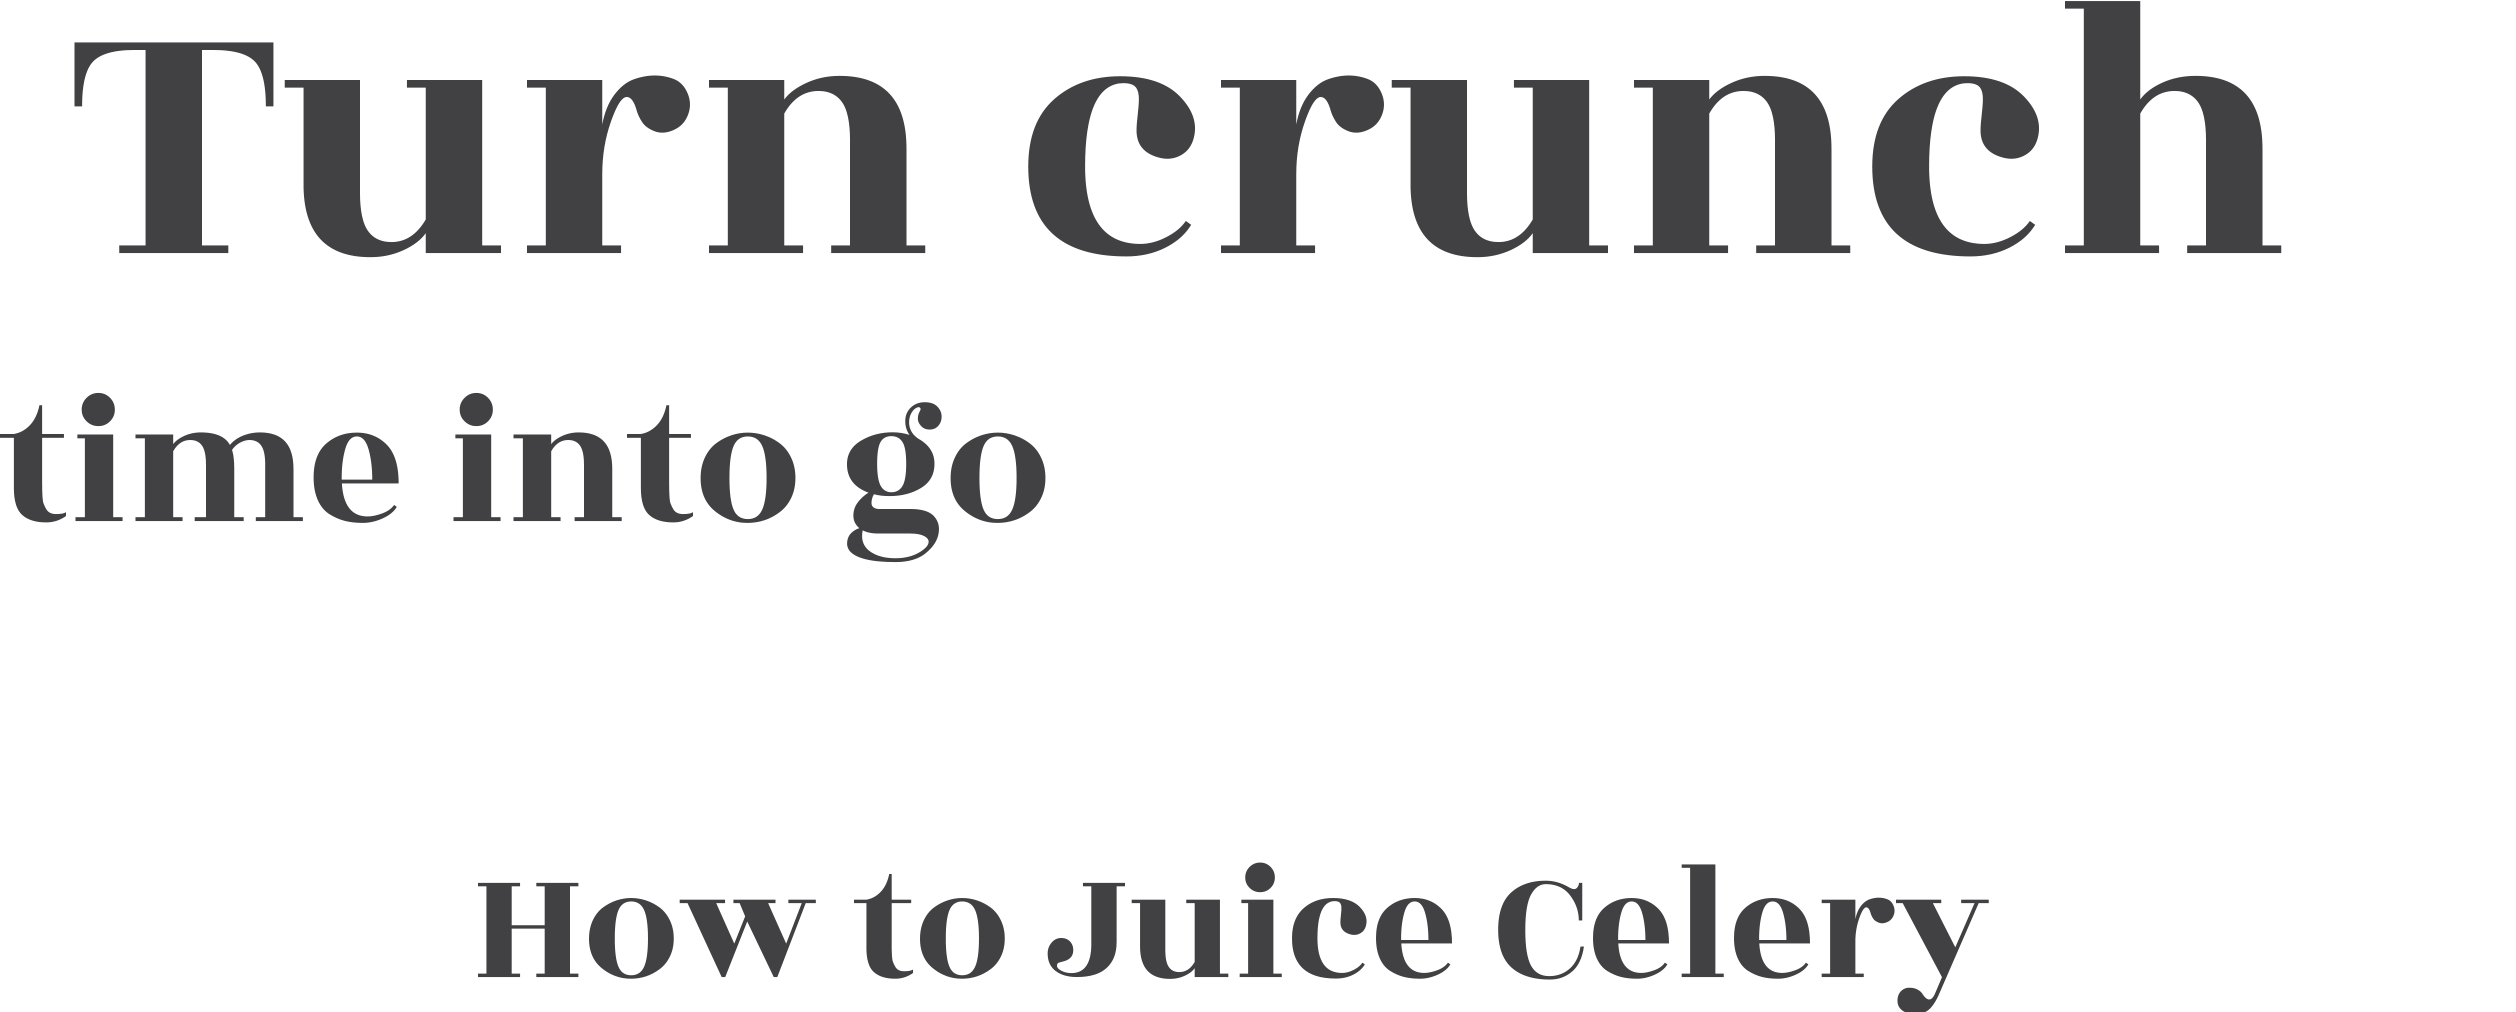 Turn crunch time into go time! How to Juice Celery